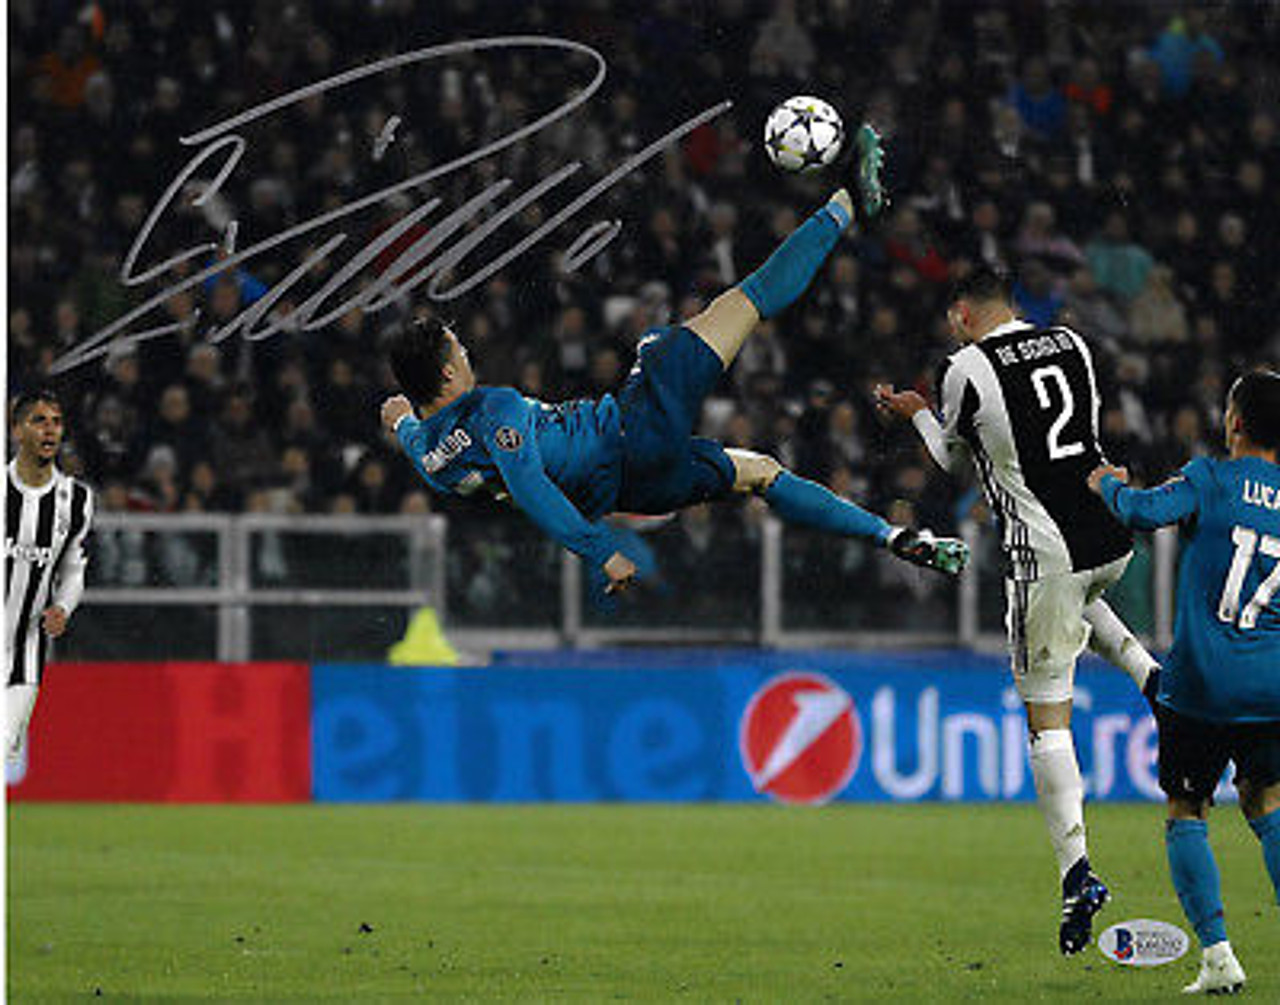 947488b91 Cristiano Ronaldo Real Madrid Autographed Champions League Bicycle Kick  16x20 Photo